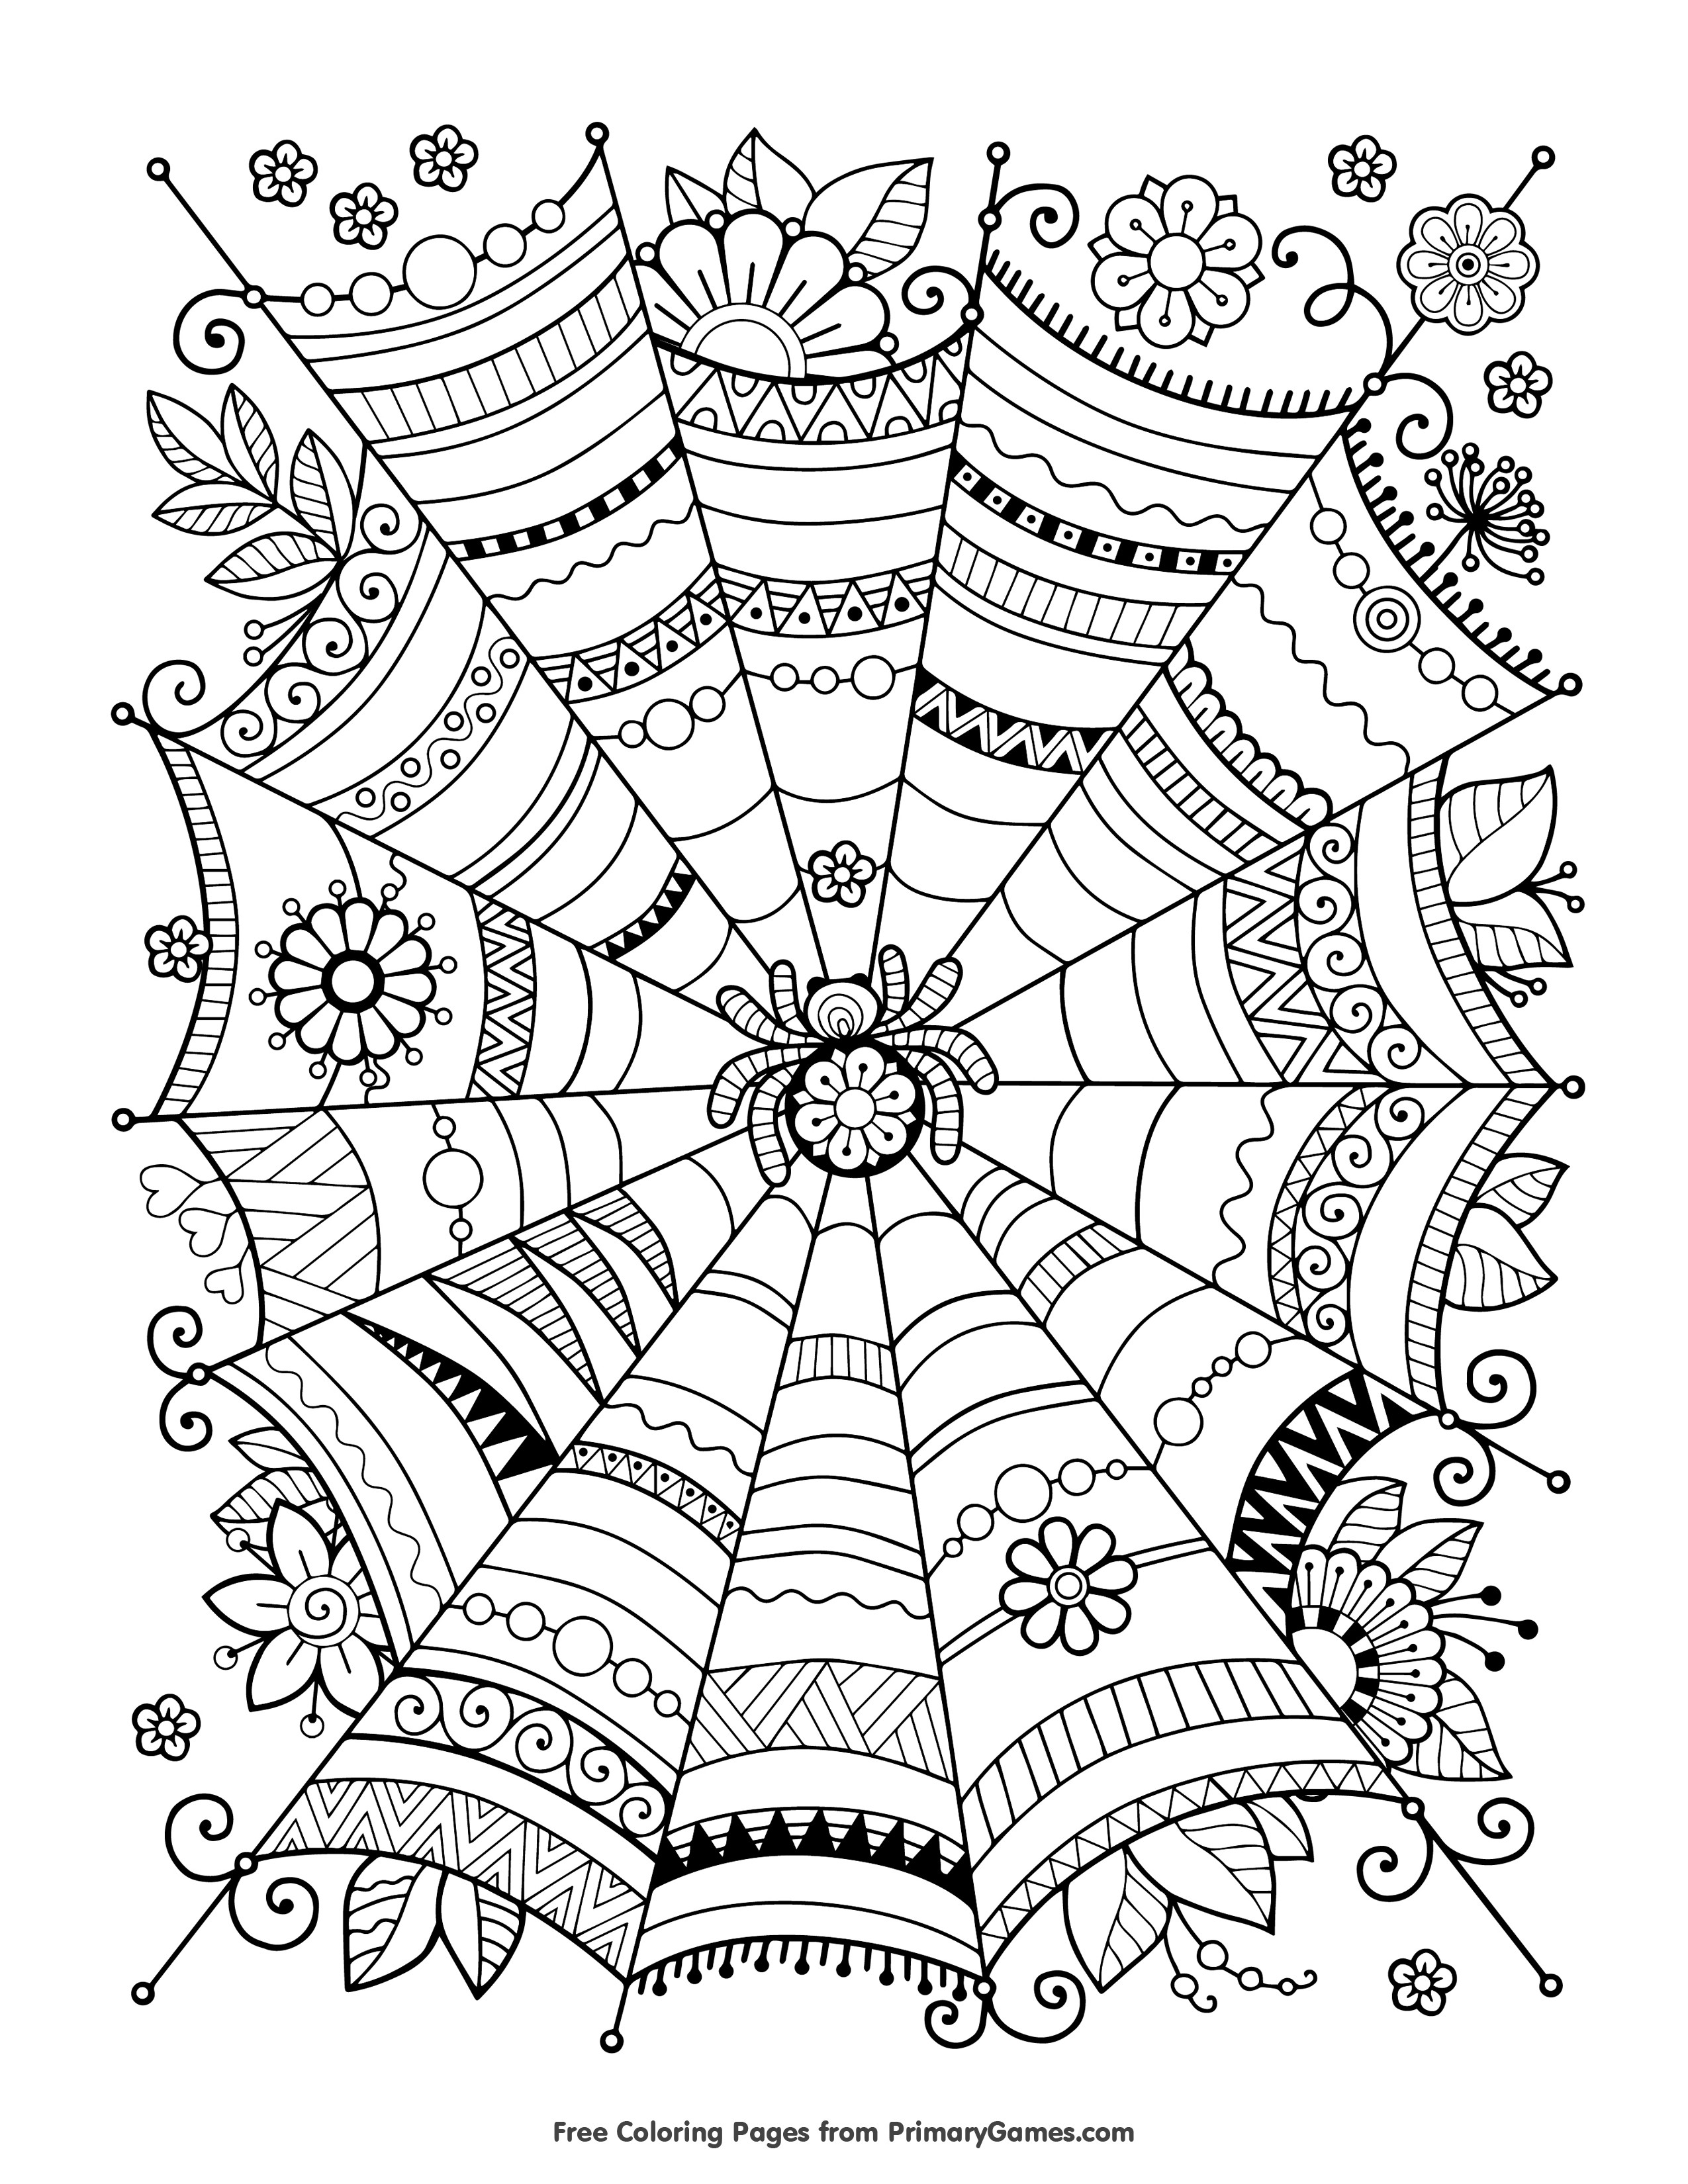 Coloring Pages For Adults Halloween  FREE Halloween Coloring Pages for Adults & Kids